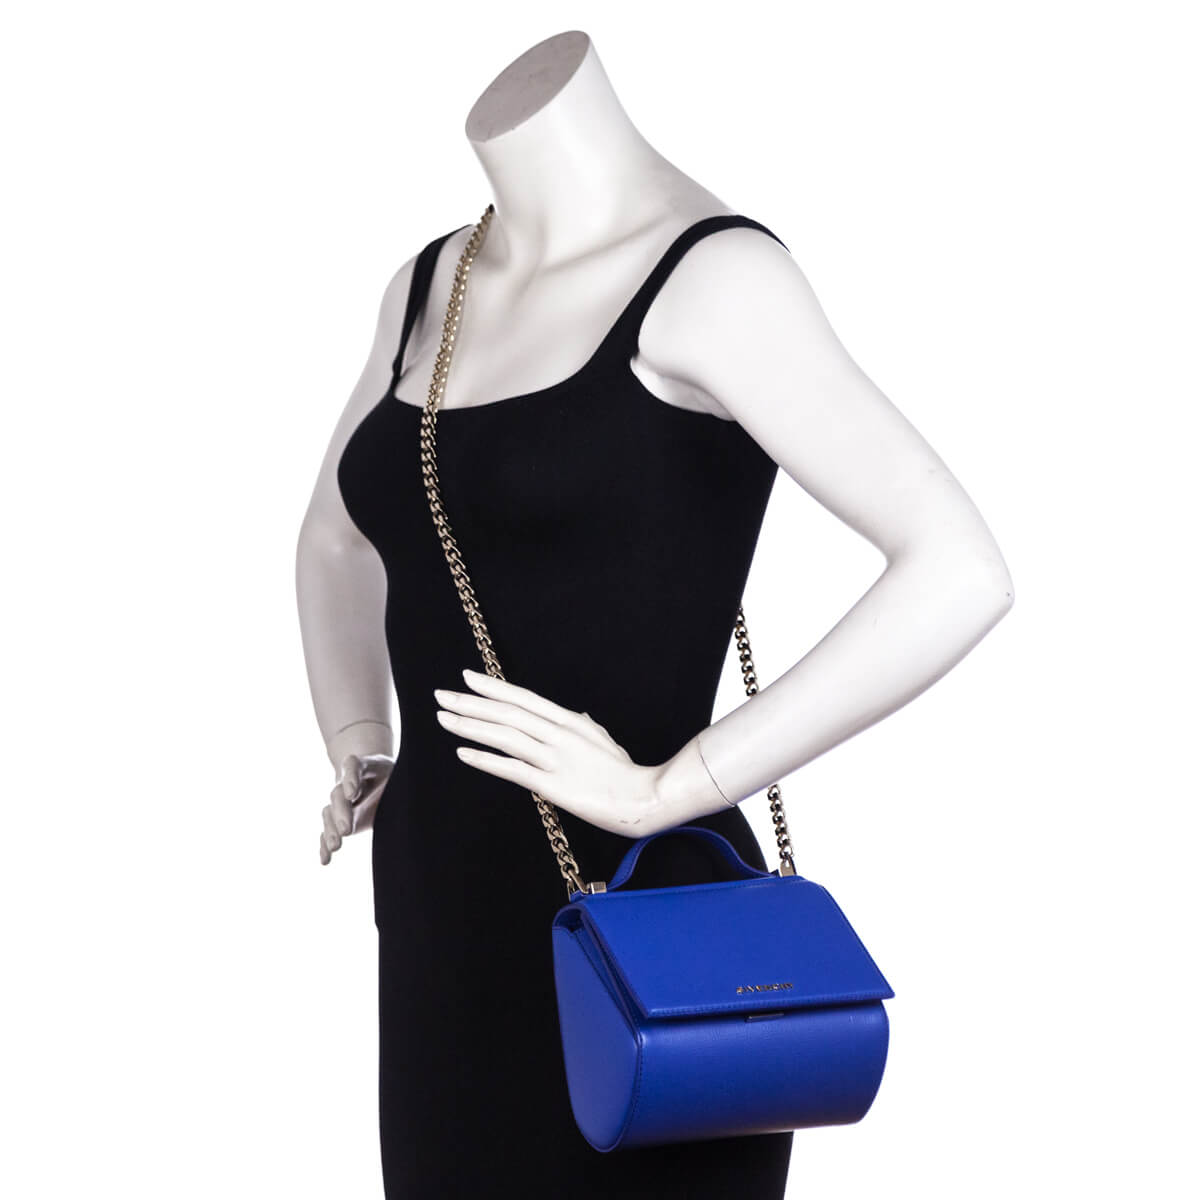 27d7289e0f61 ... Givenchy Indigo Blue Calfskin Mini Pandora Box Shoulder Bag - LOVE that  BAG - Preowned Authentic